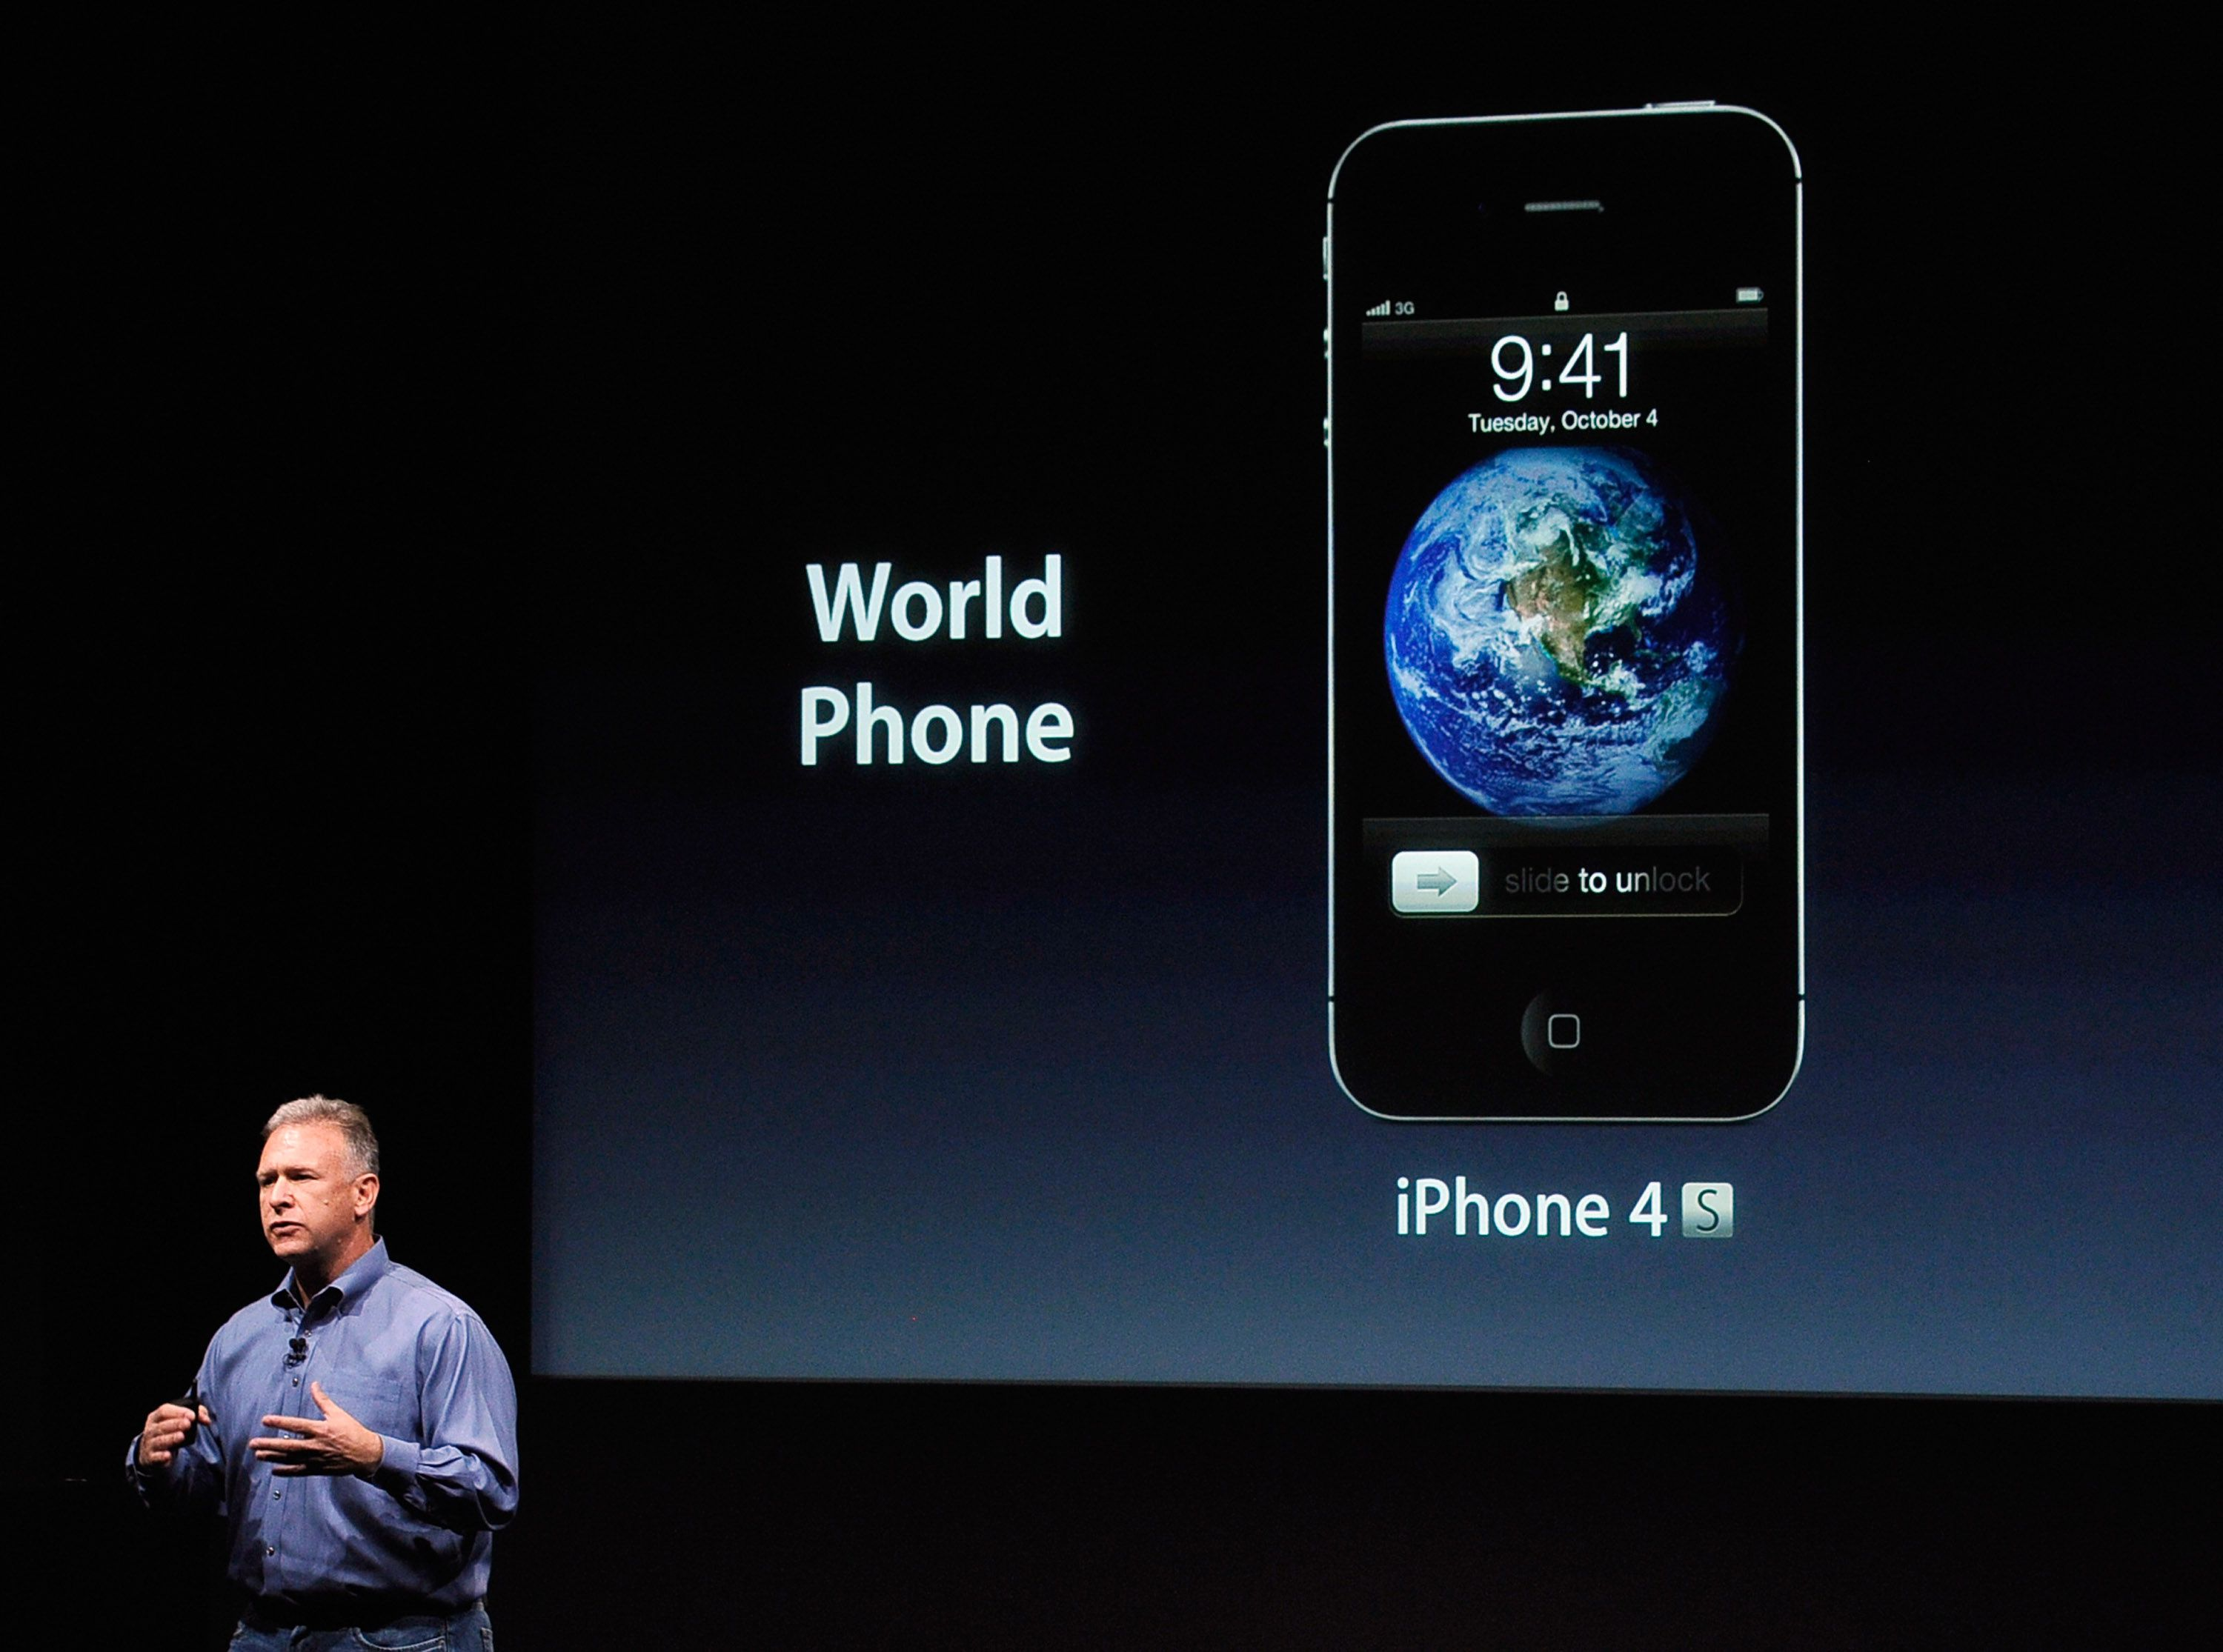 How Much Does the iPhone 4S Cost and Its Service?